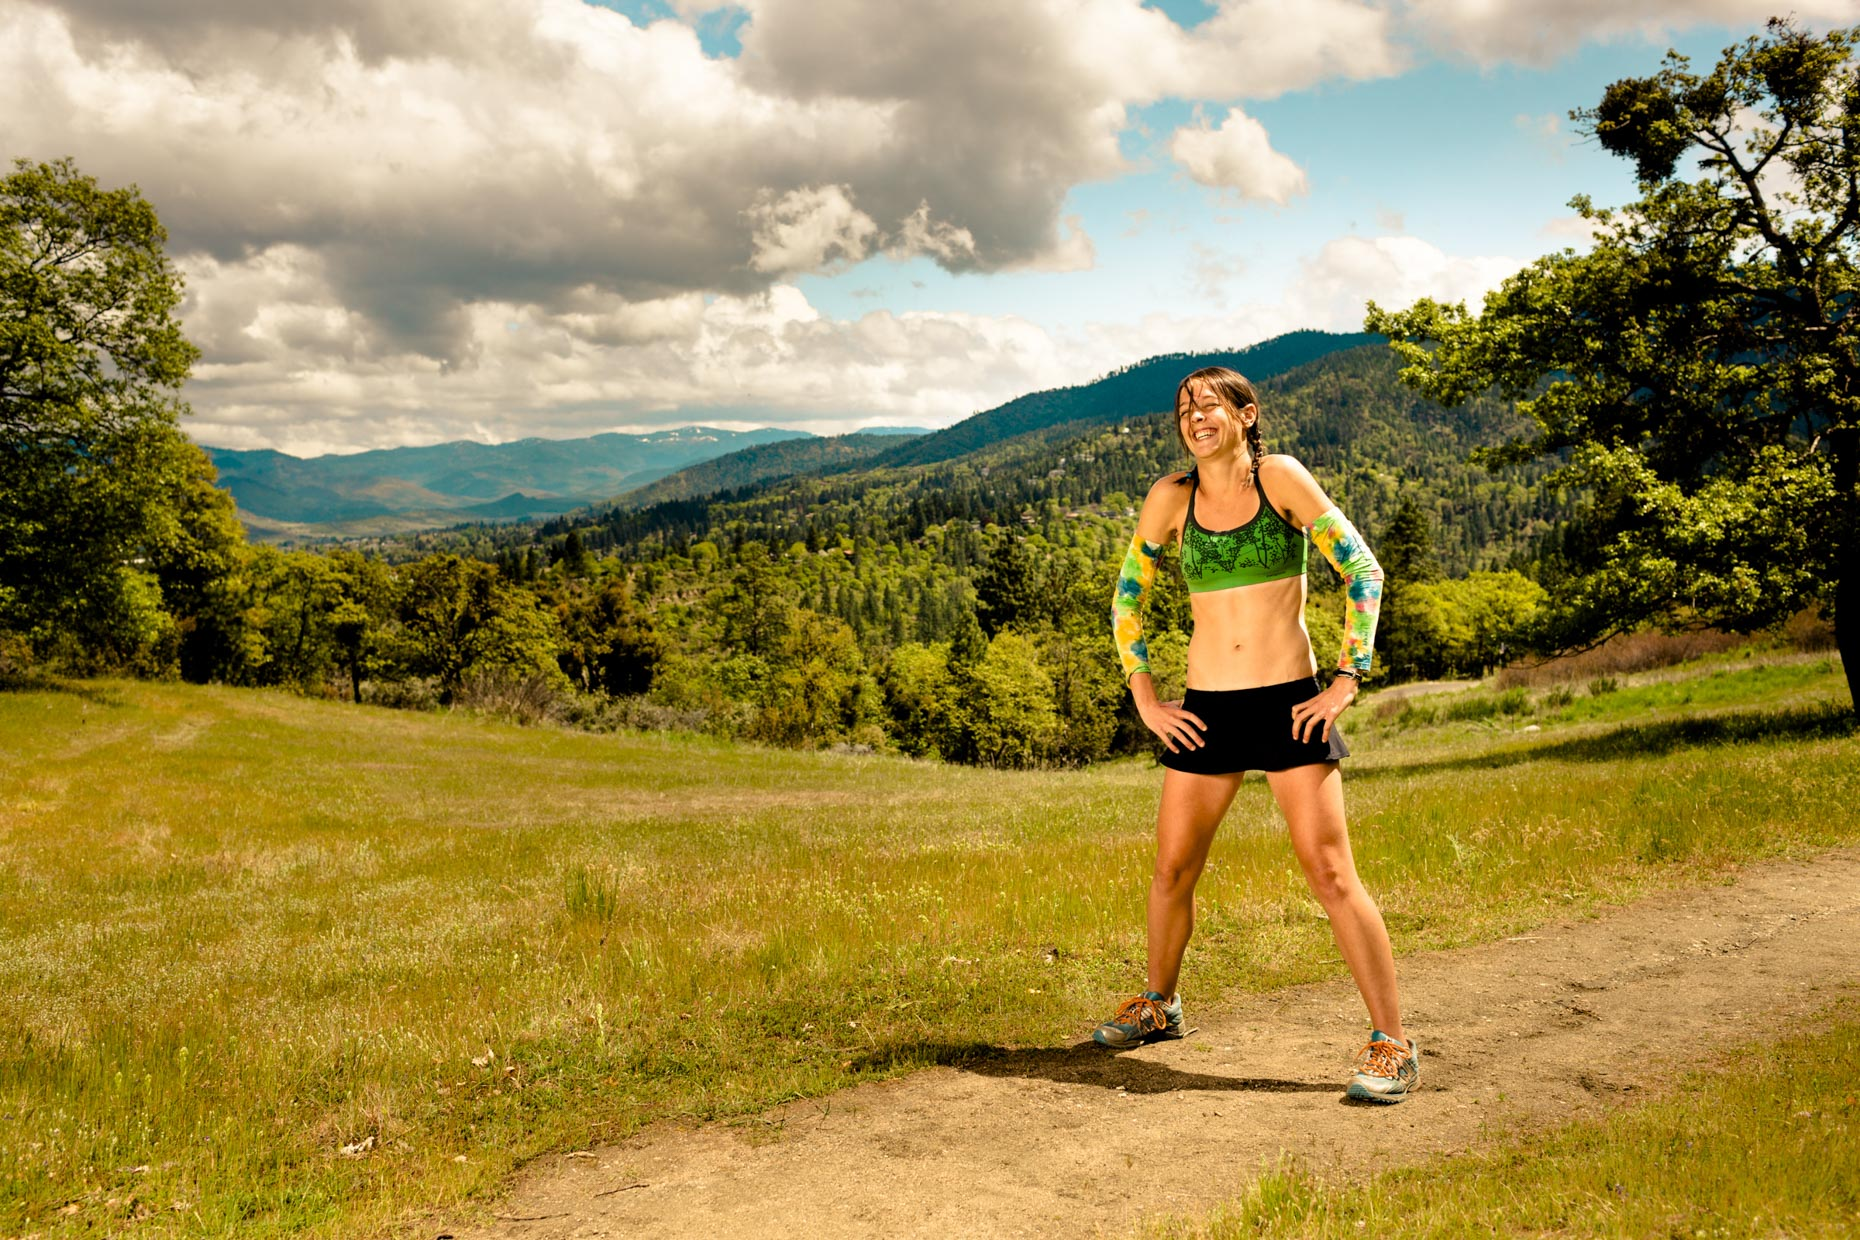 Ultramarathon runner Jenn Shelton